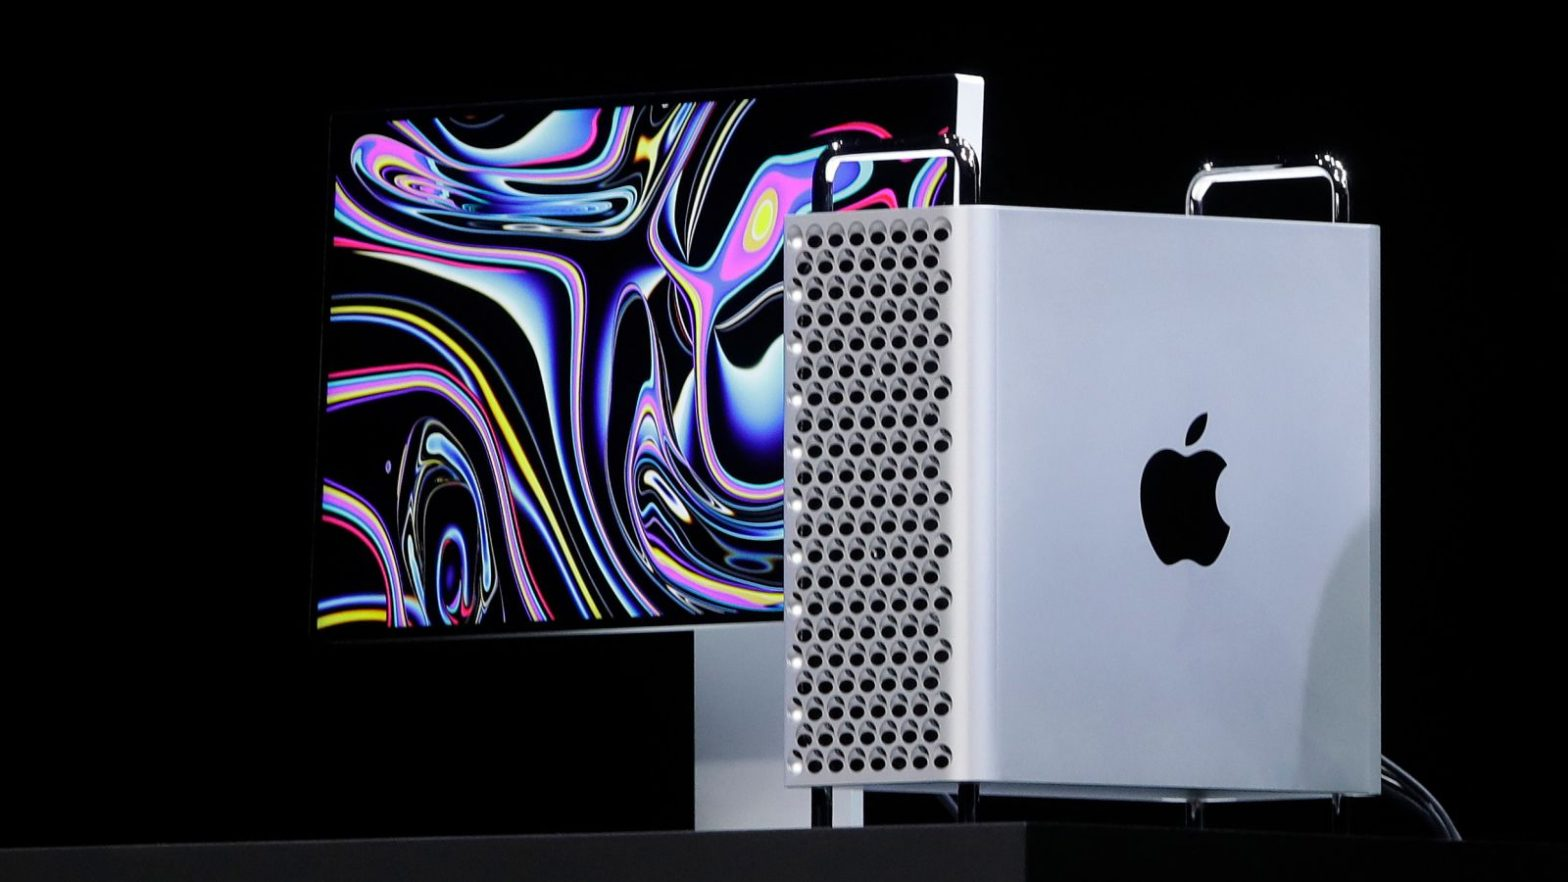 Apple Will Keep on Making Mac Pros in Texas After Scoring U.S.-China Trade War Exemptions – Gizmodo